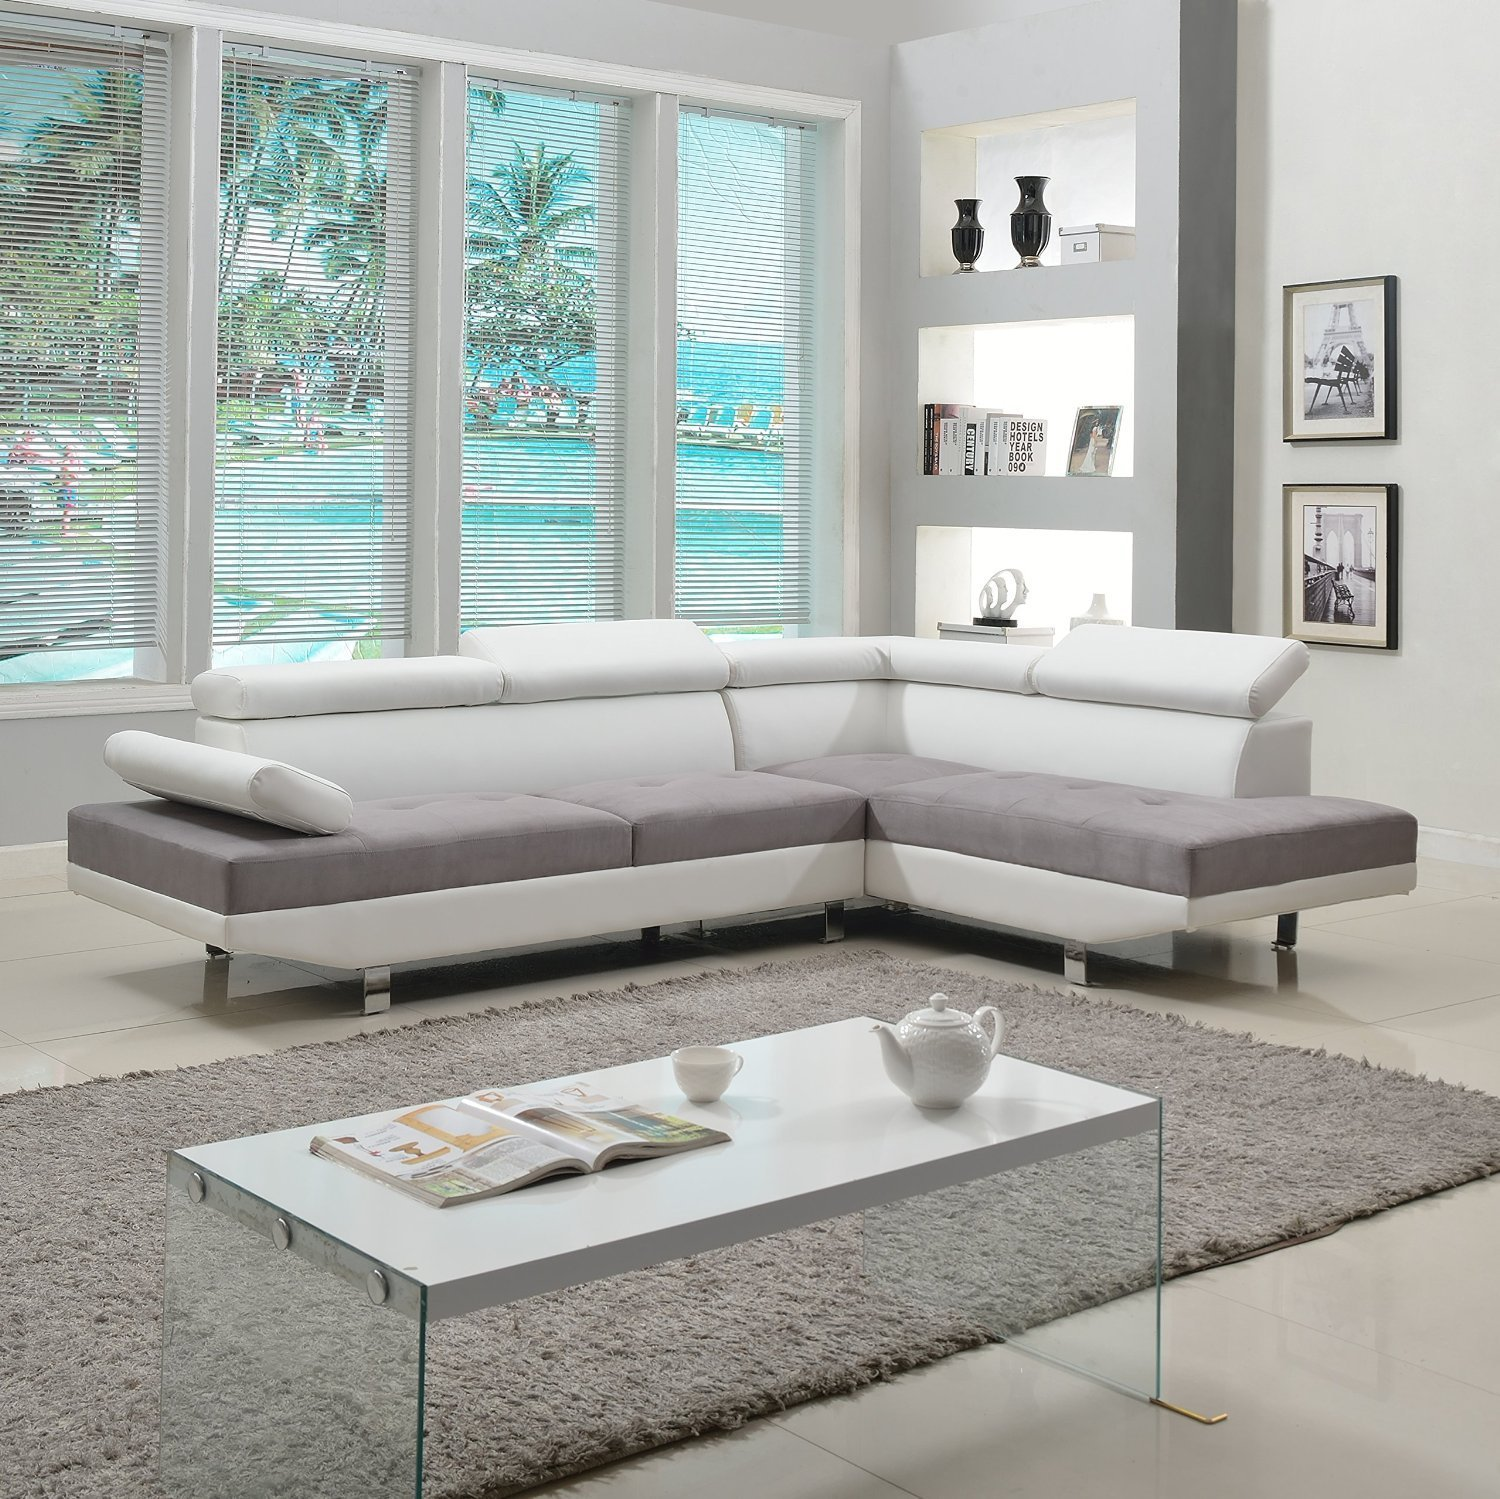 Modern living room furniture review find the best one for Sectional sofa or two sofas